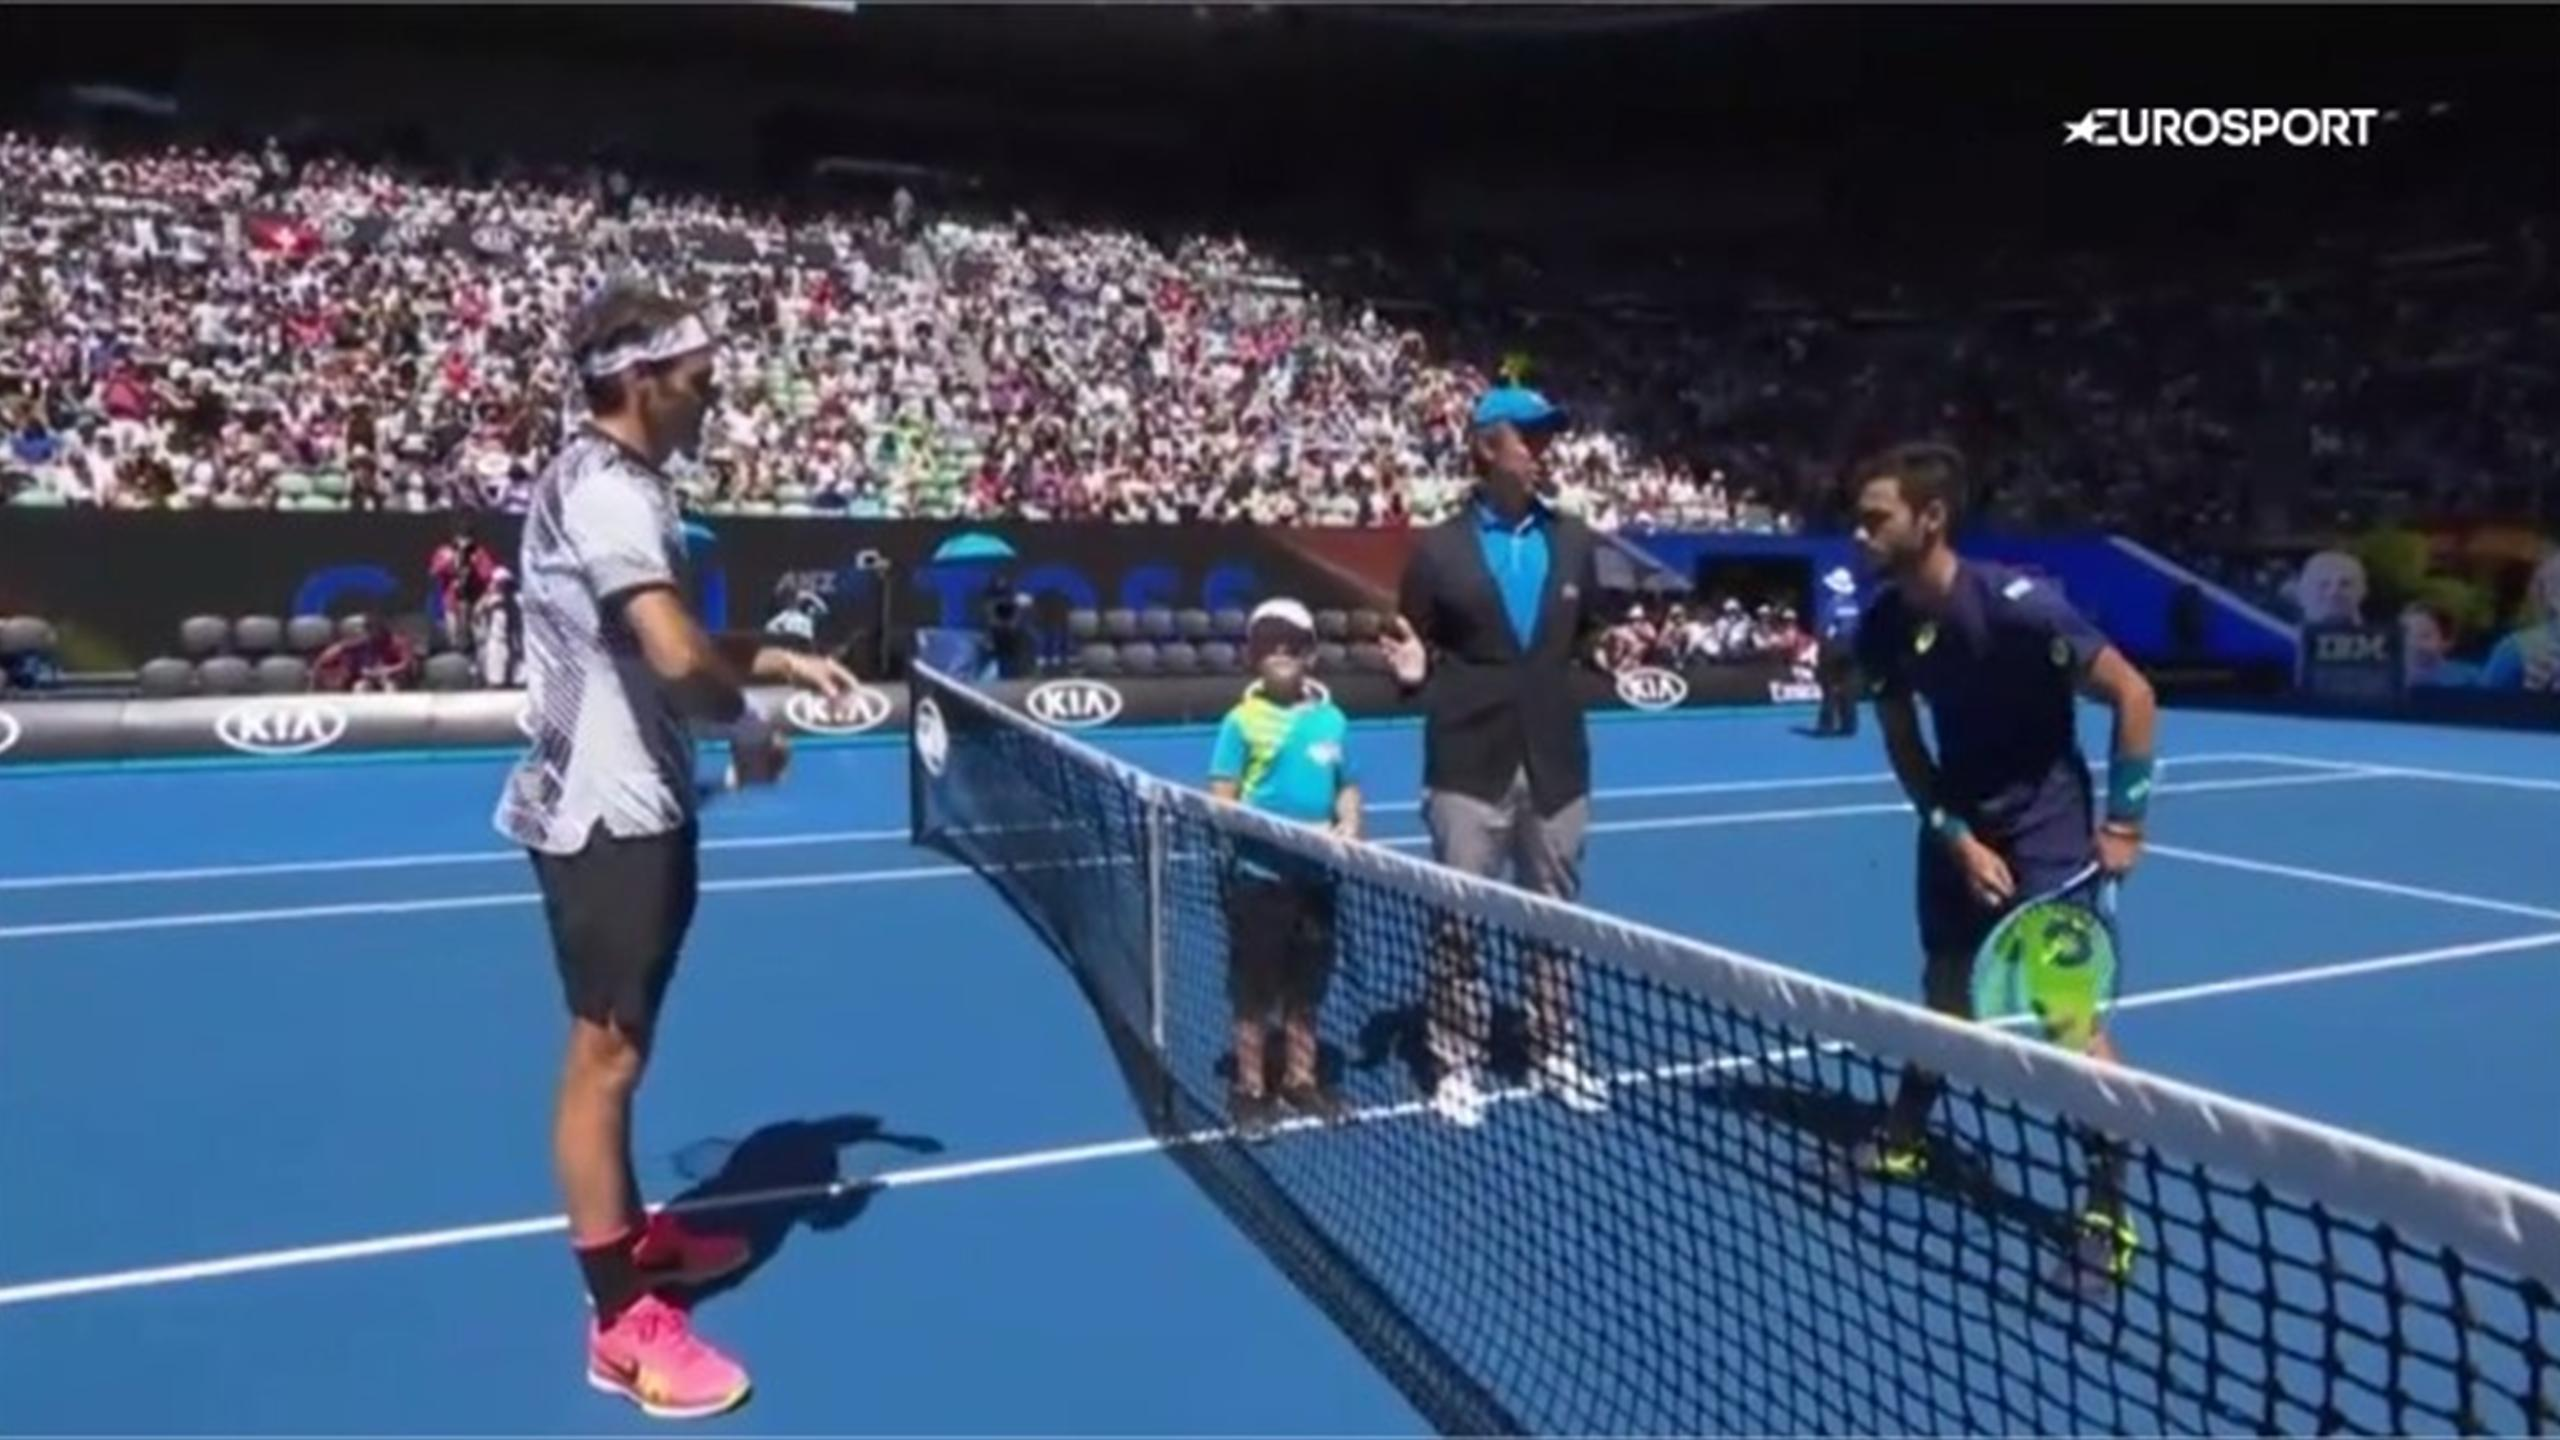 Umpire gets ball boy to 'choose favourite player' before Roger Federer match